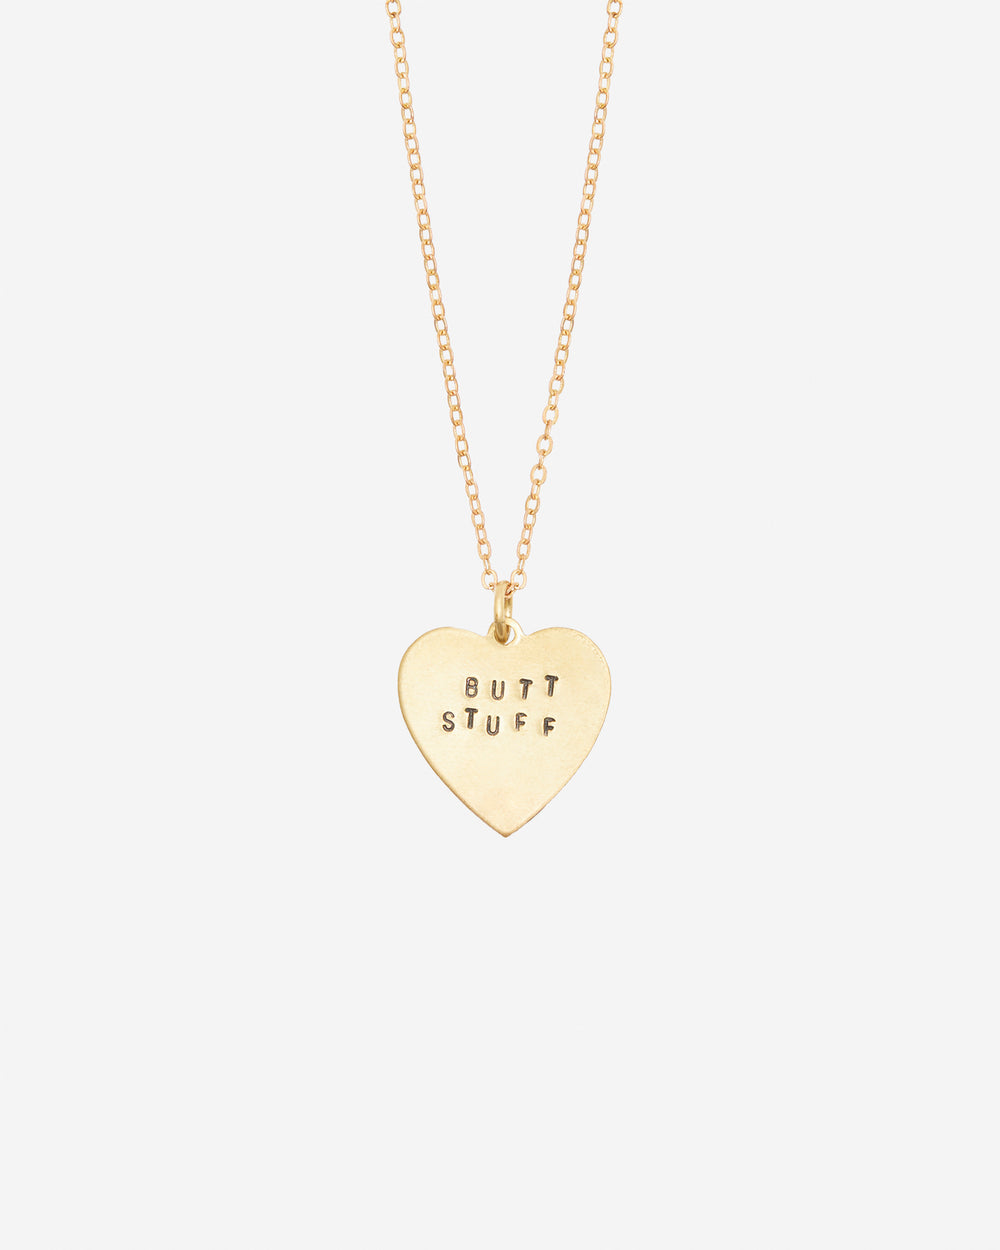 Butt Stuff Hand-Stamped Necklace